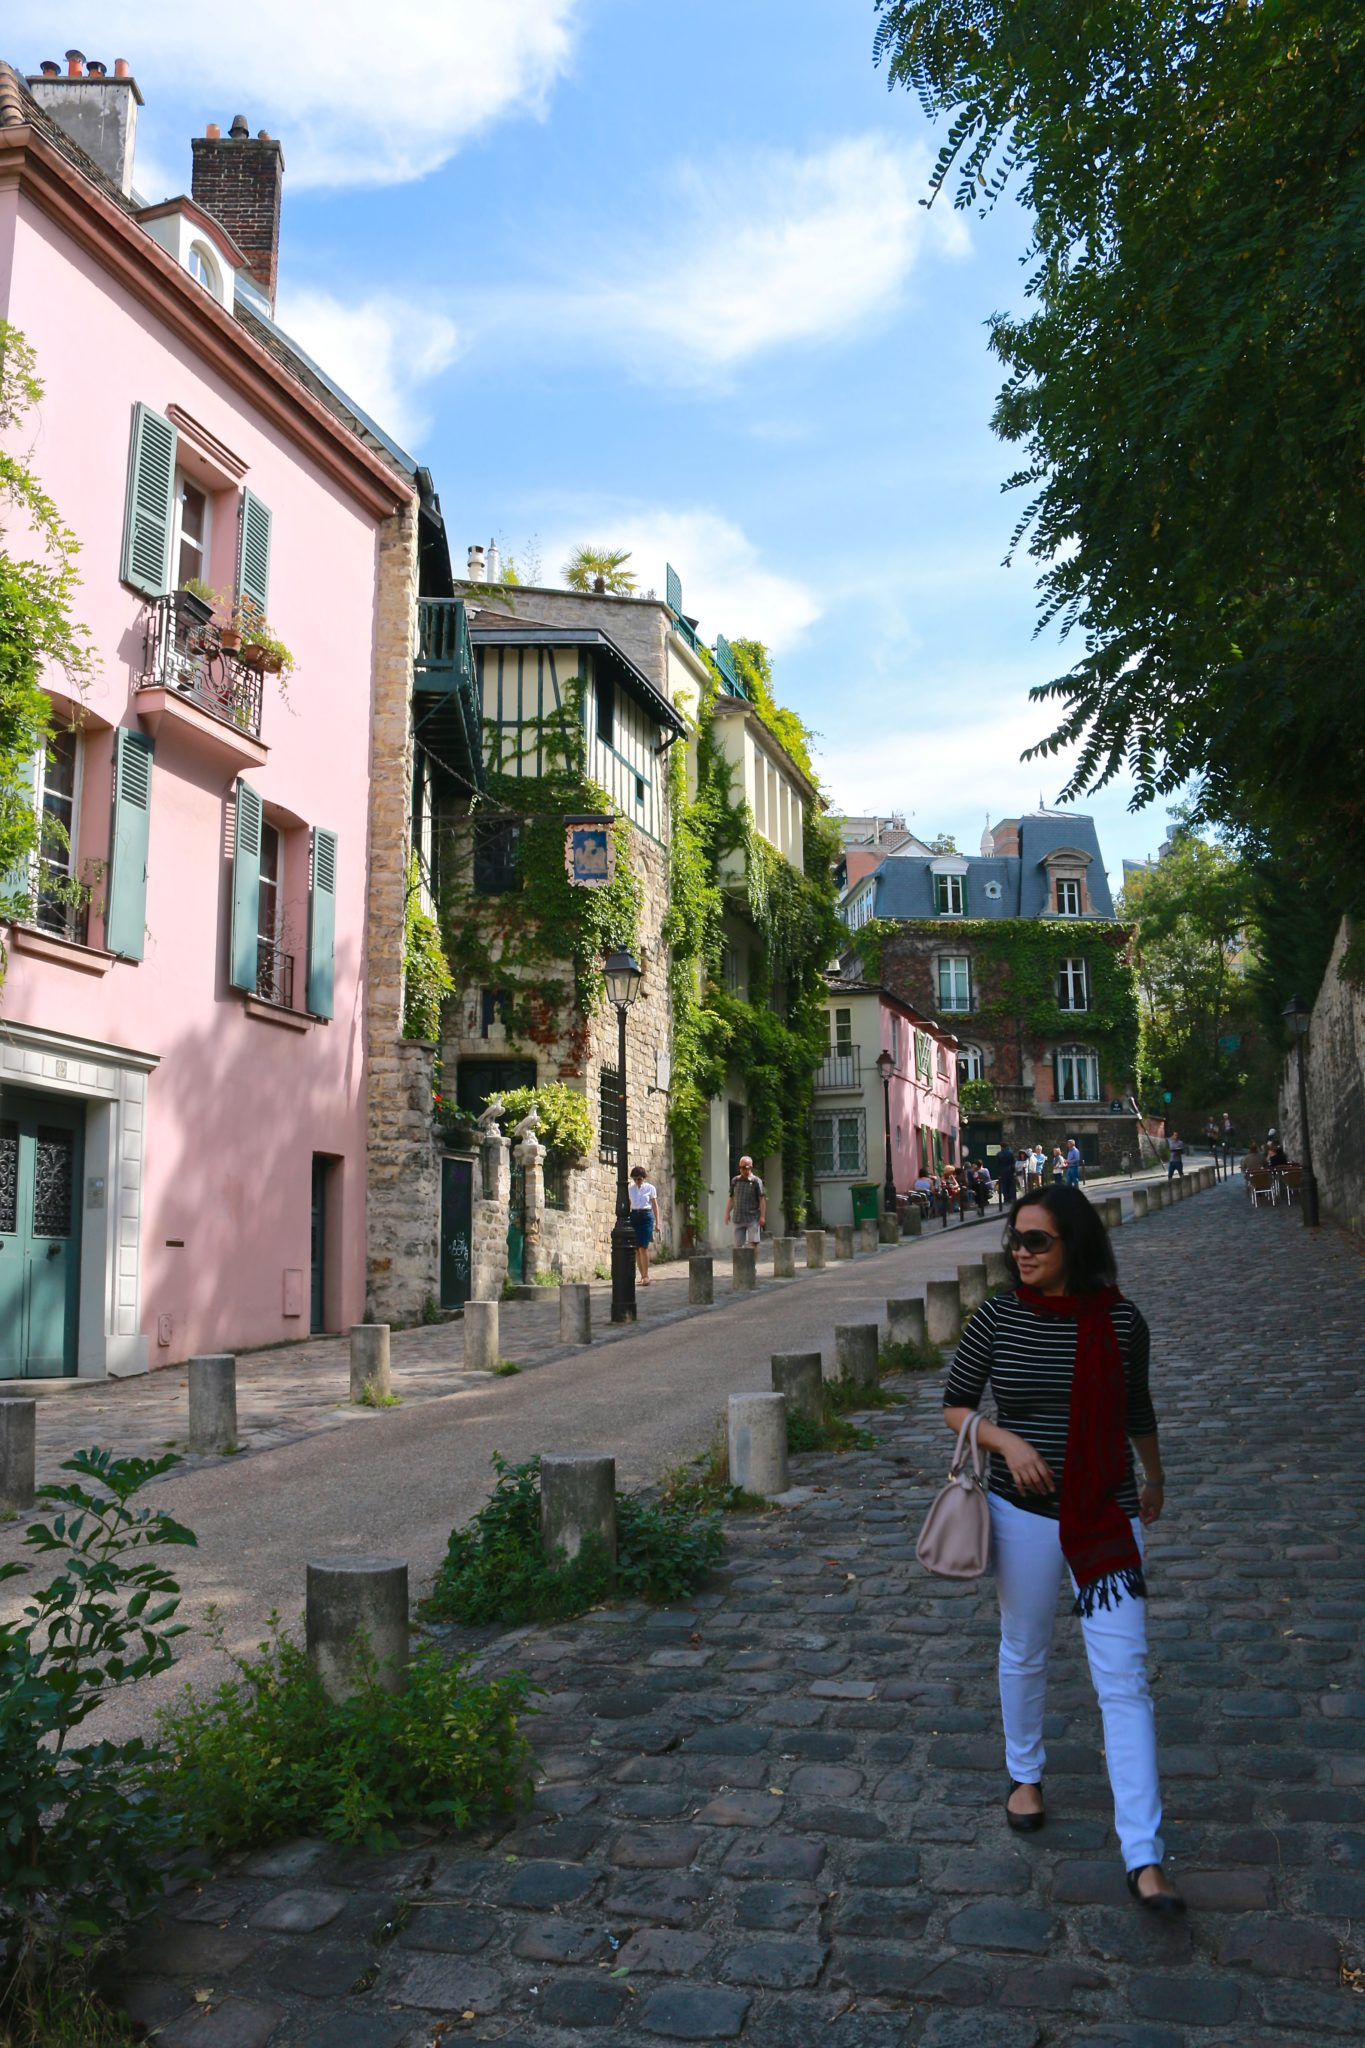 Our Walking Tour in Monmartre